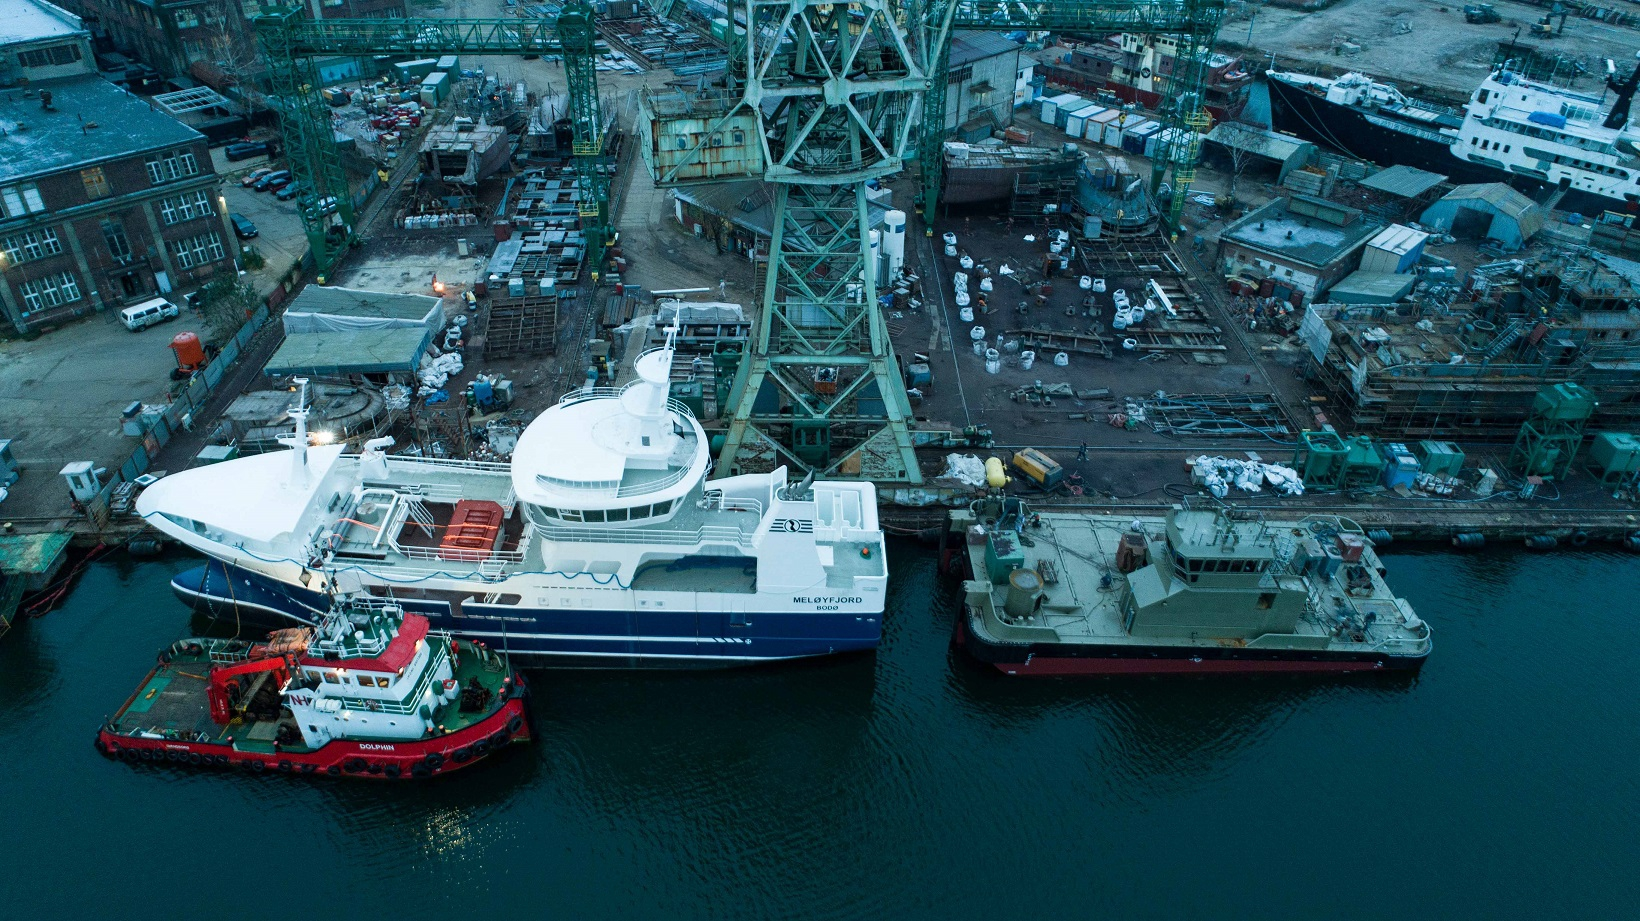 Work at the Safe Shipyard is in full swing! (photo, video)